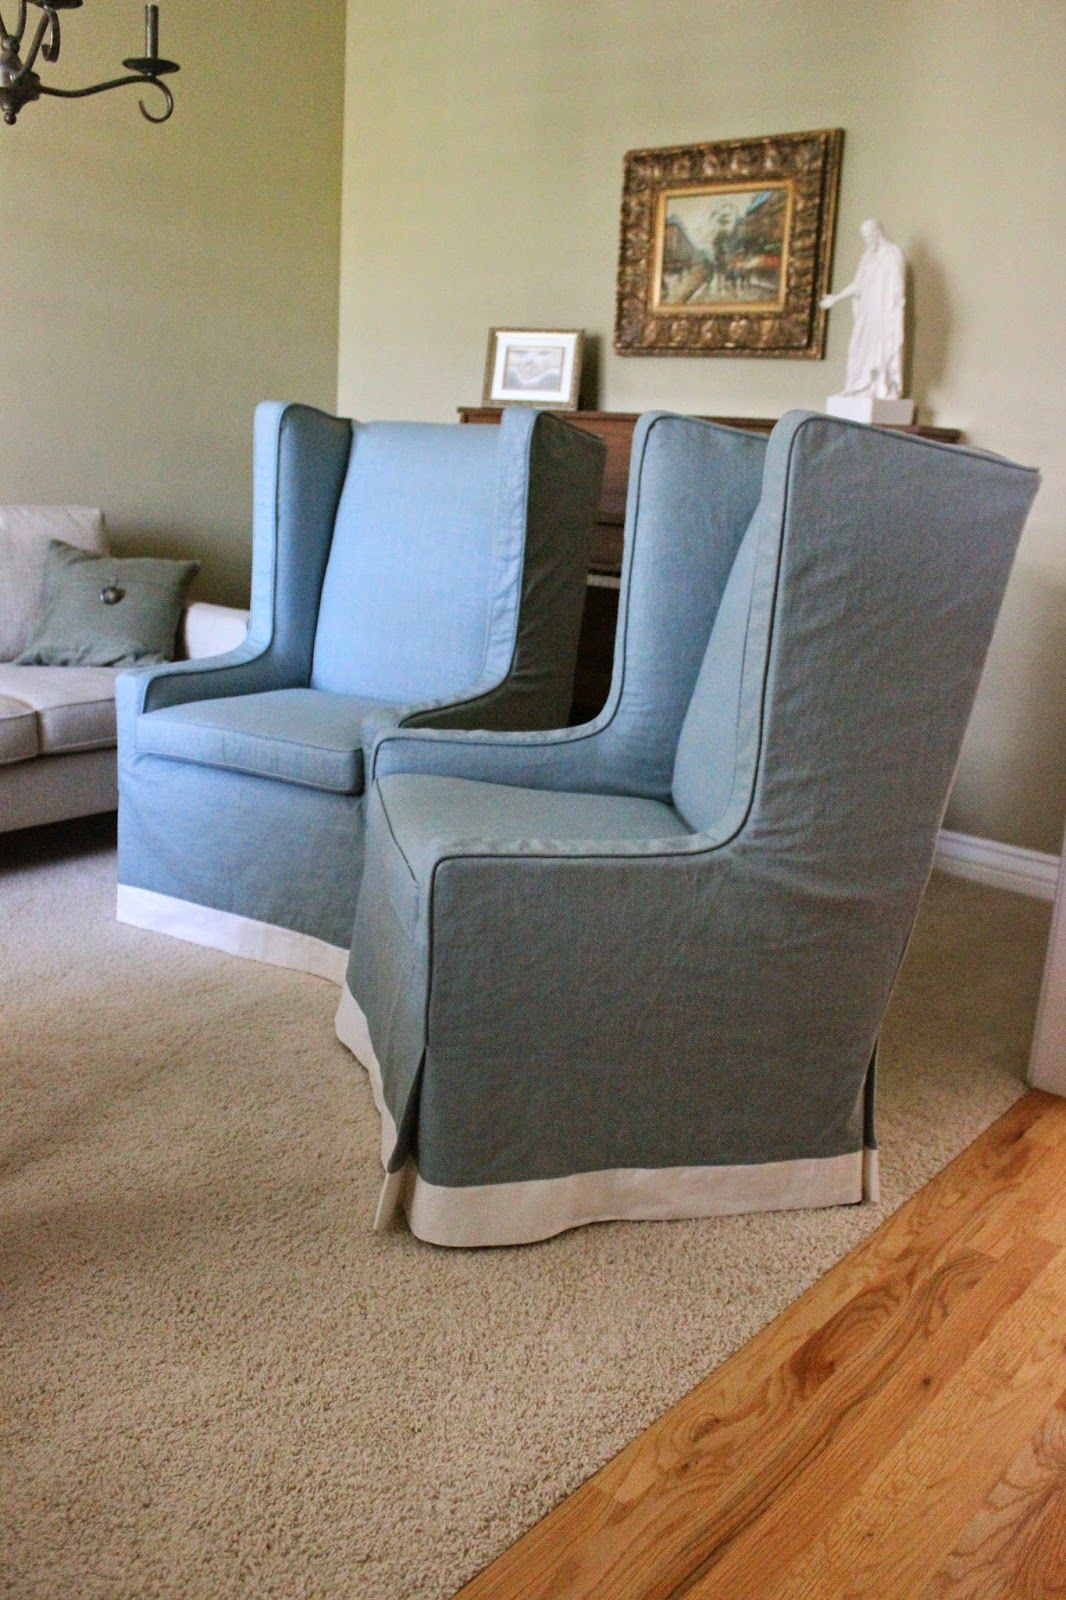 38+ Living room arm chair covers ideas in 2021